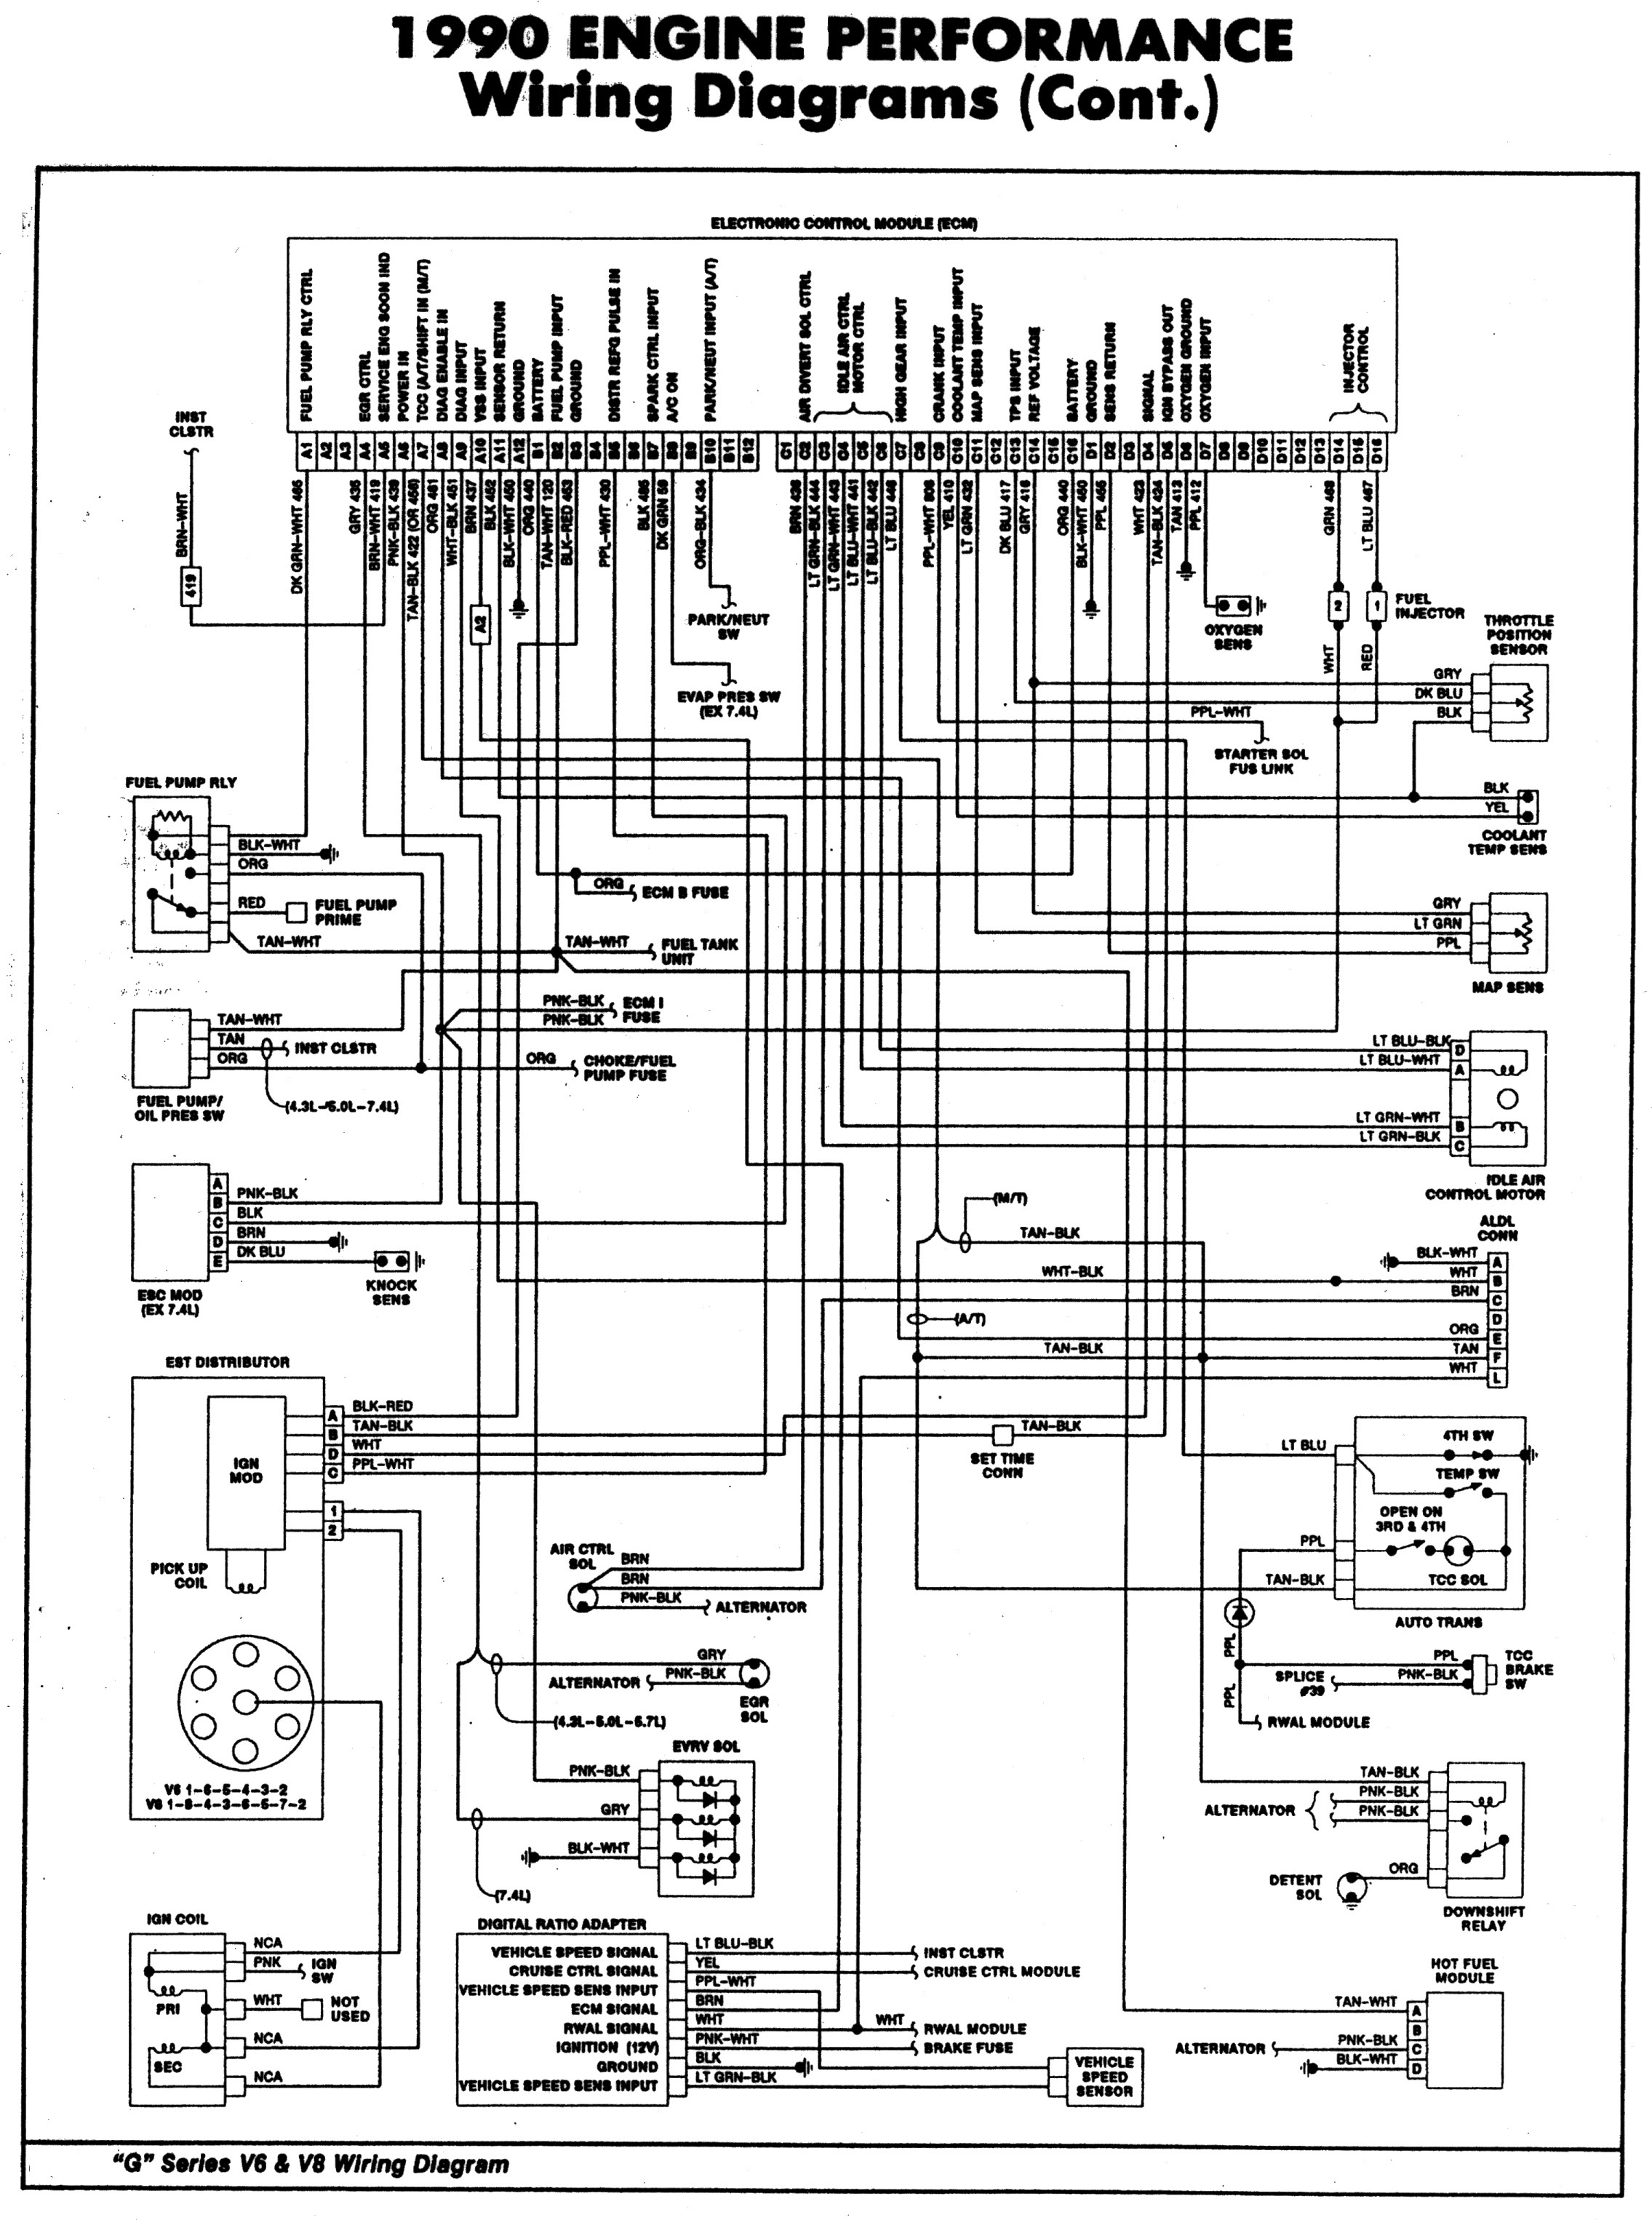 ignitiondiagram 1990 chevy suburban tbi 350 installation land rh pinterest  com 2001 suburban engine diagram 2001